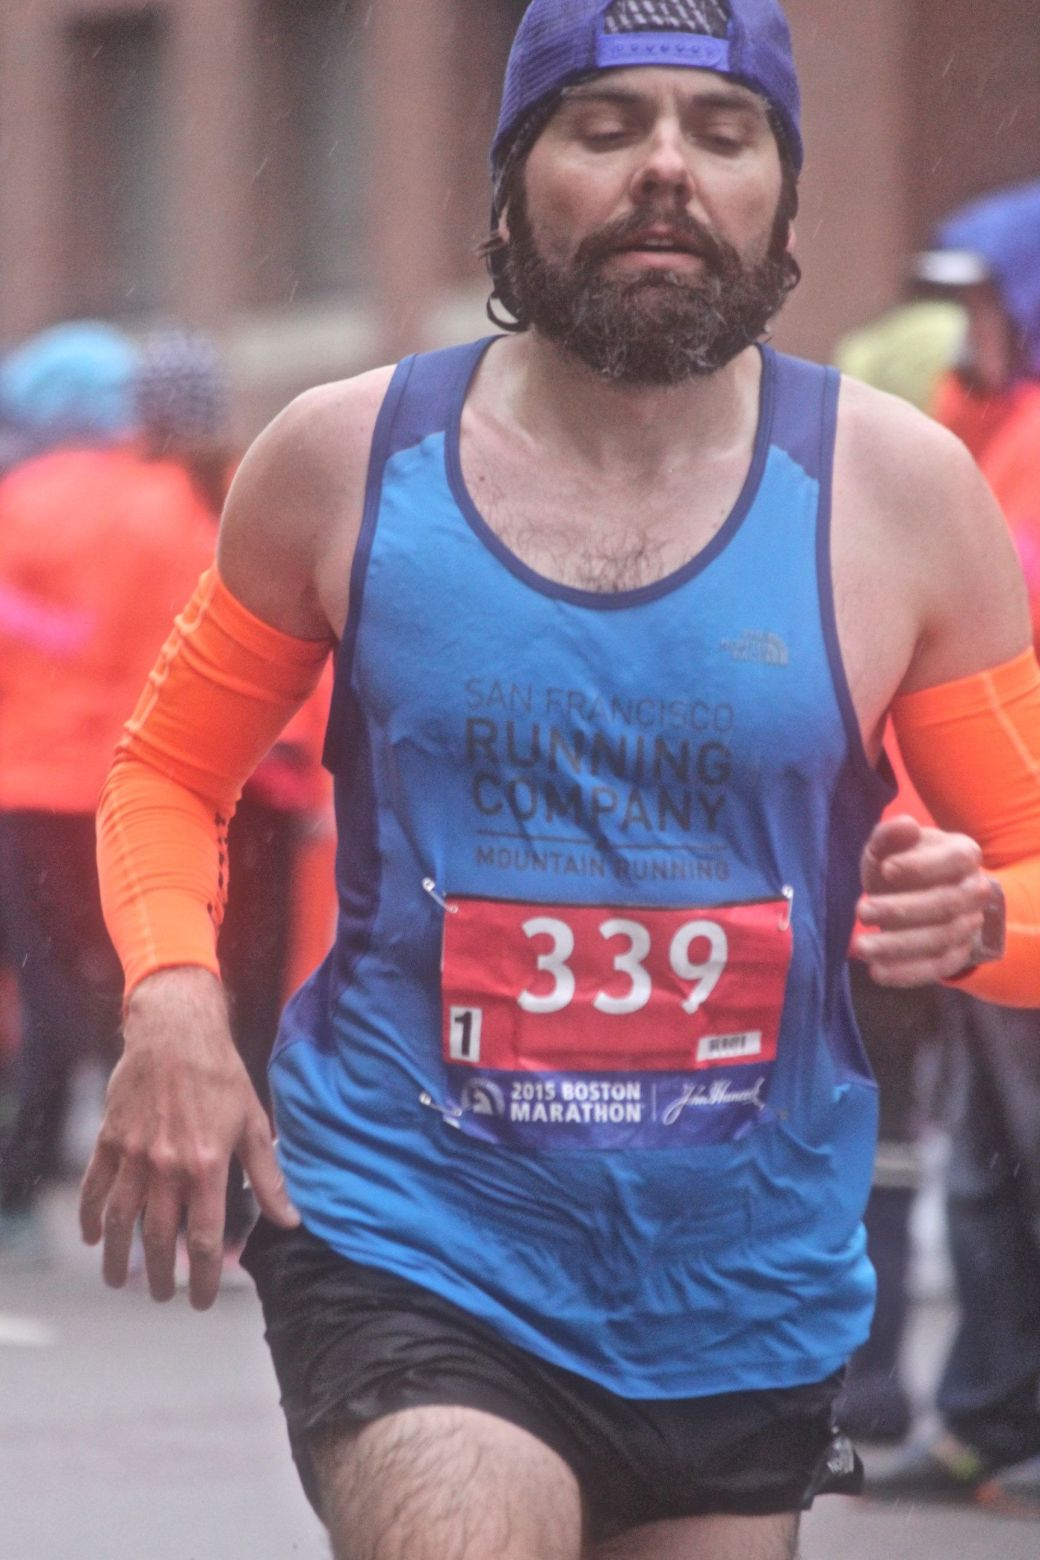 boston marathon april 20 2015 racer number 339